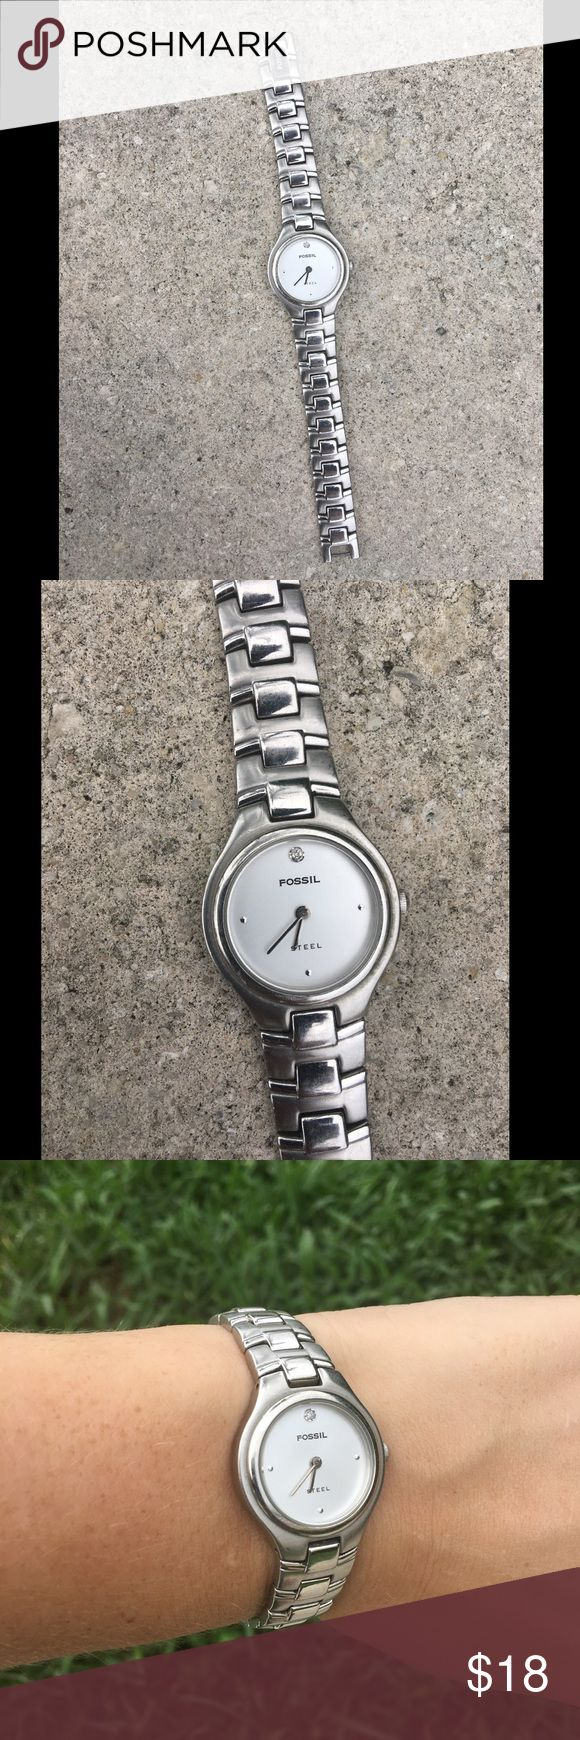 "Fossil Stainless Steel with Genuine Diamond Watch Fossil smooth fit link watch. Well loved. Needs battery! Price reflects need of battery but price to replace is minimal at any mall watch shop. Genuine diamond at 12 o clock on the face. Band fits size 7"" wrist securely. Originally $75! Only one owner! Fossil Accessories Watches"